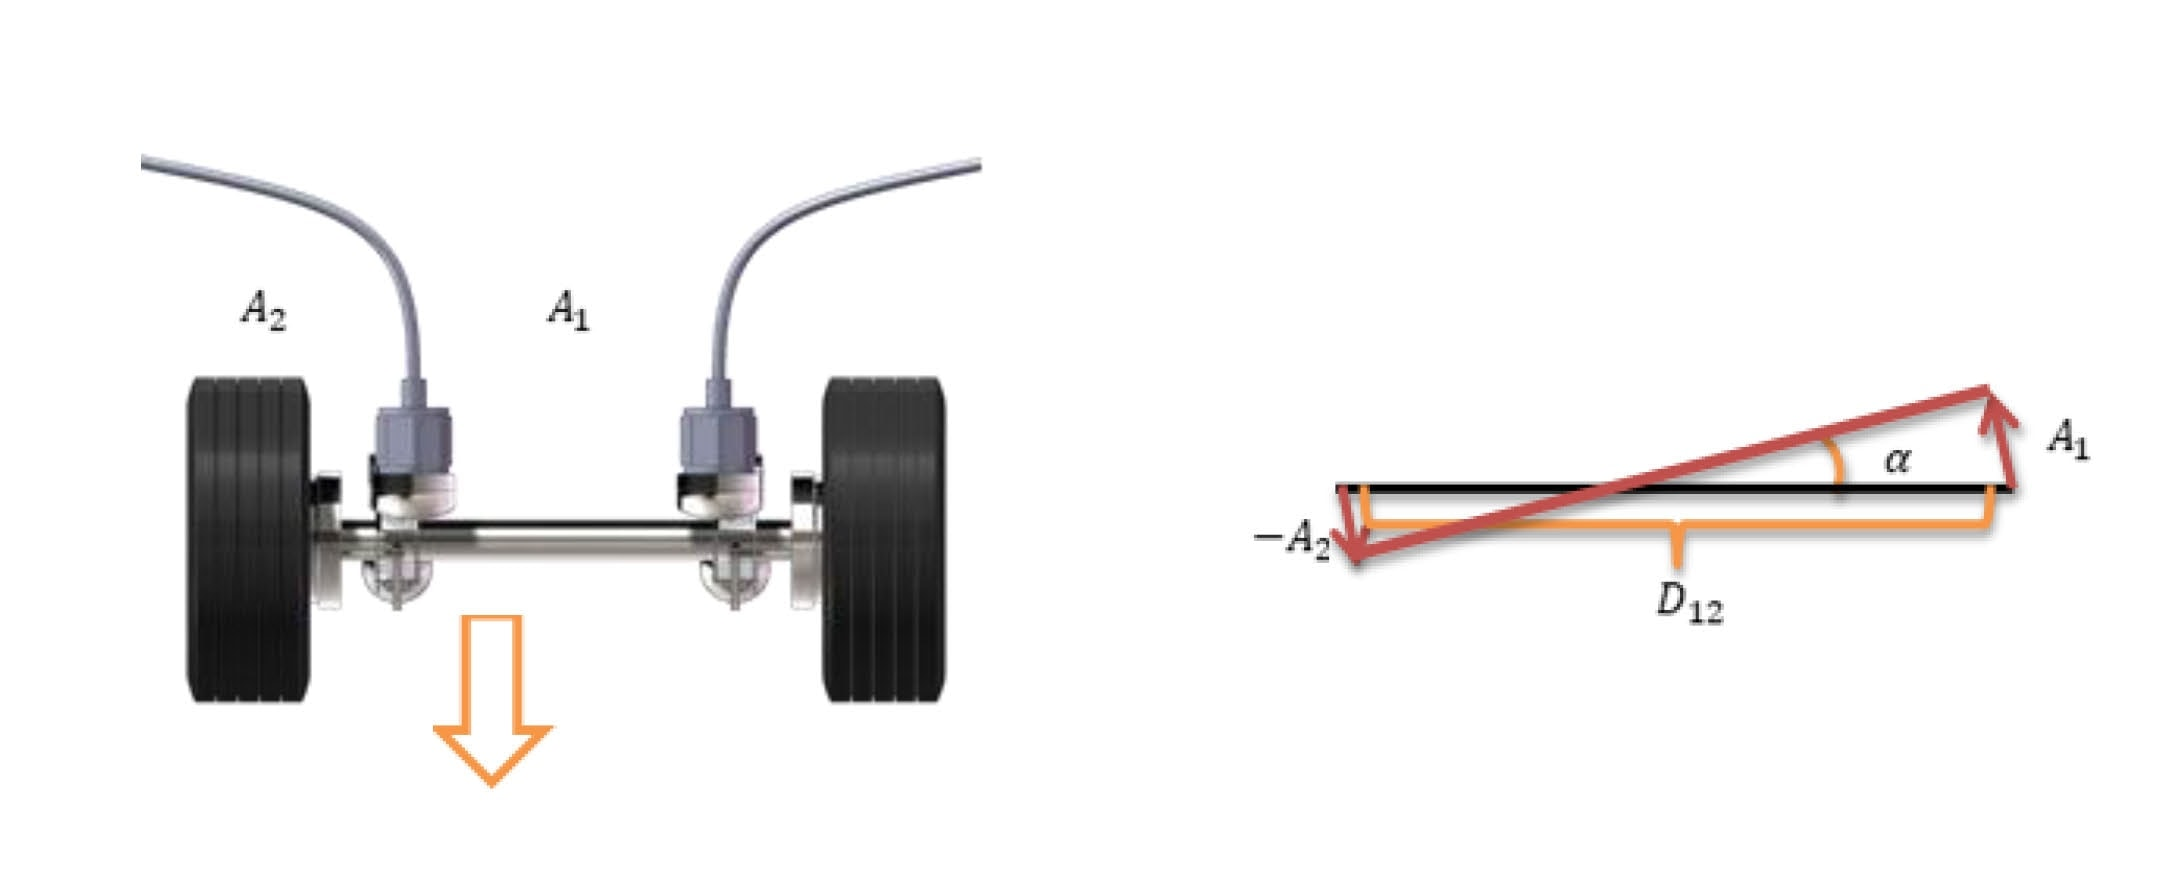 truck axle with two linear accelerometers mounted and diagram